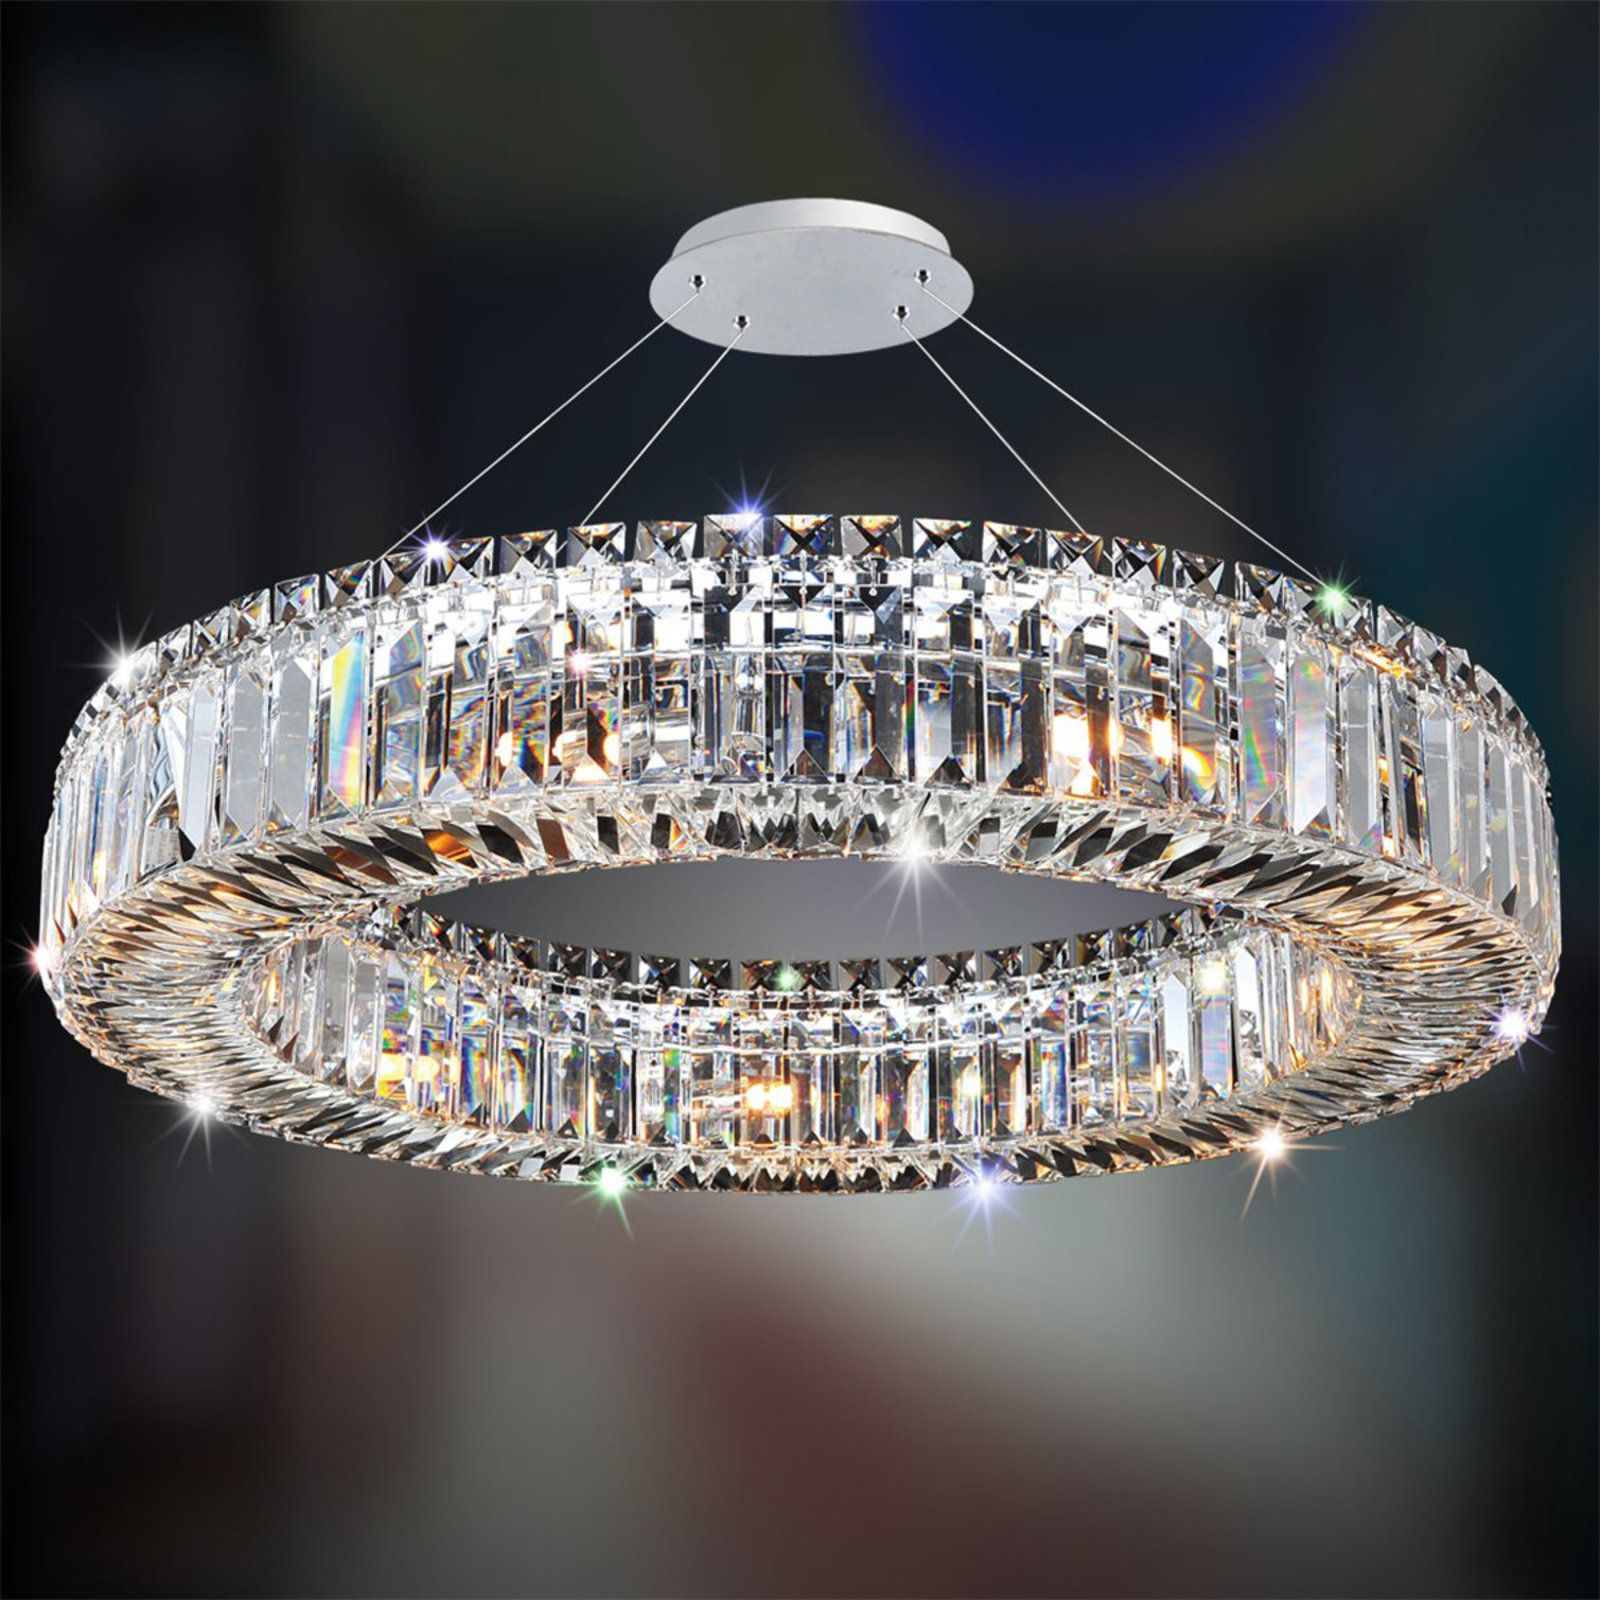 Sparkling Crystal Block Ring Chandelier Modern Crystal Chandelier Crystal Chandelier Dining Room Ring Chandelier